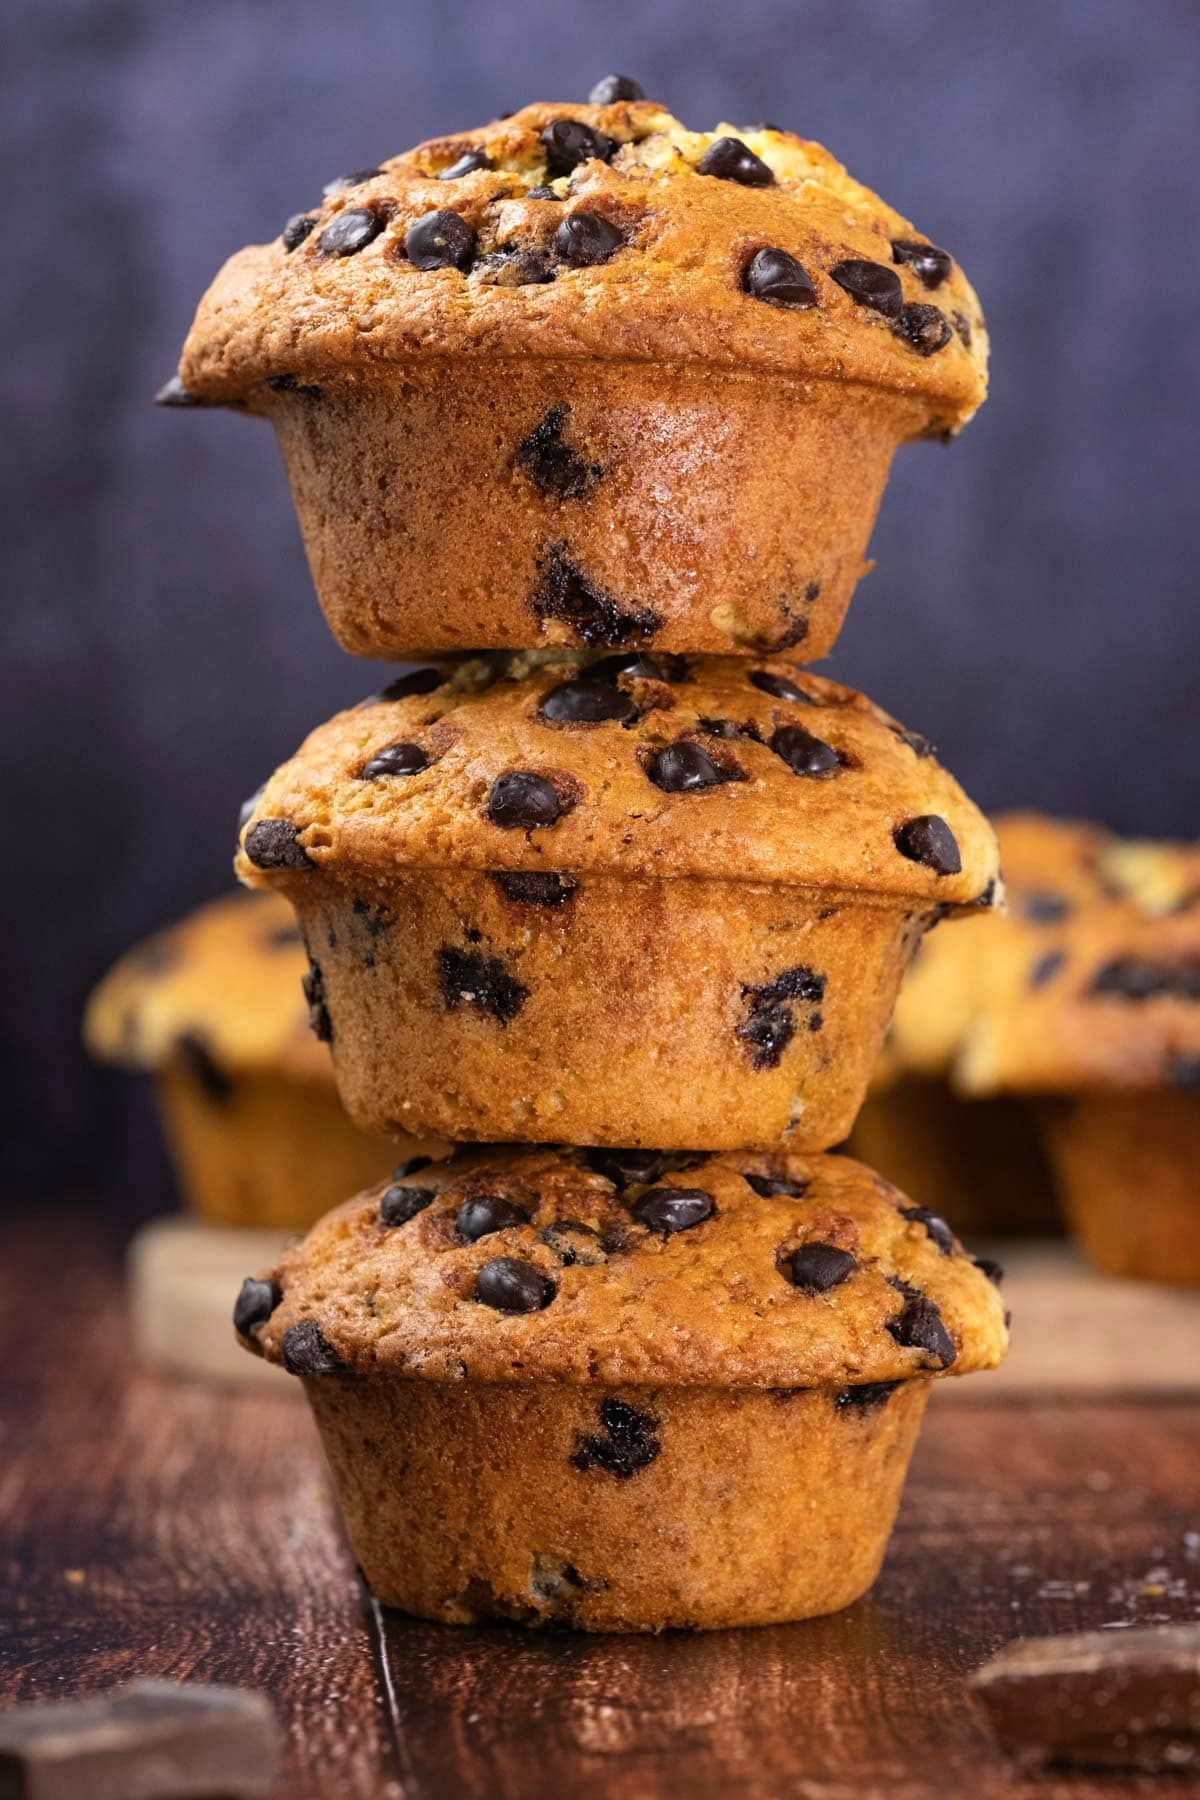 Chocolate chip muffins in a stack.